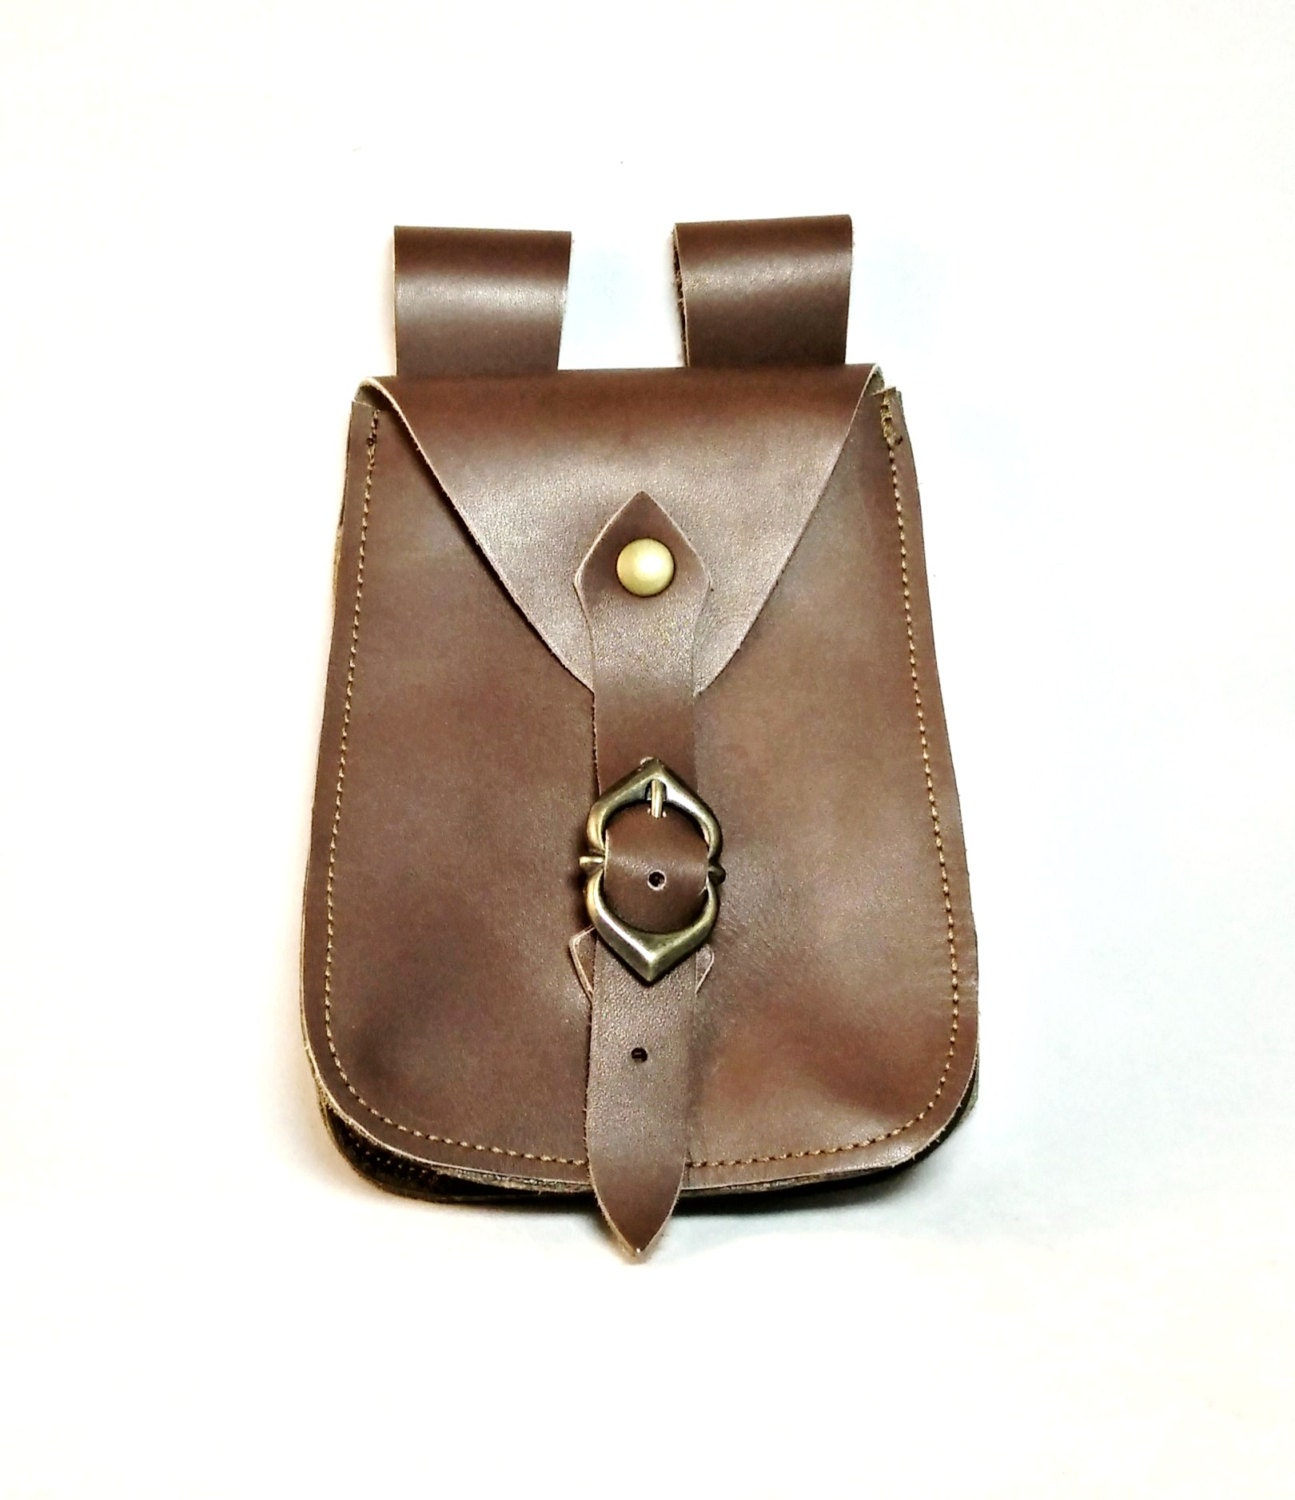 leather belt pouch with decorated metal by